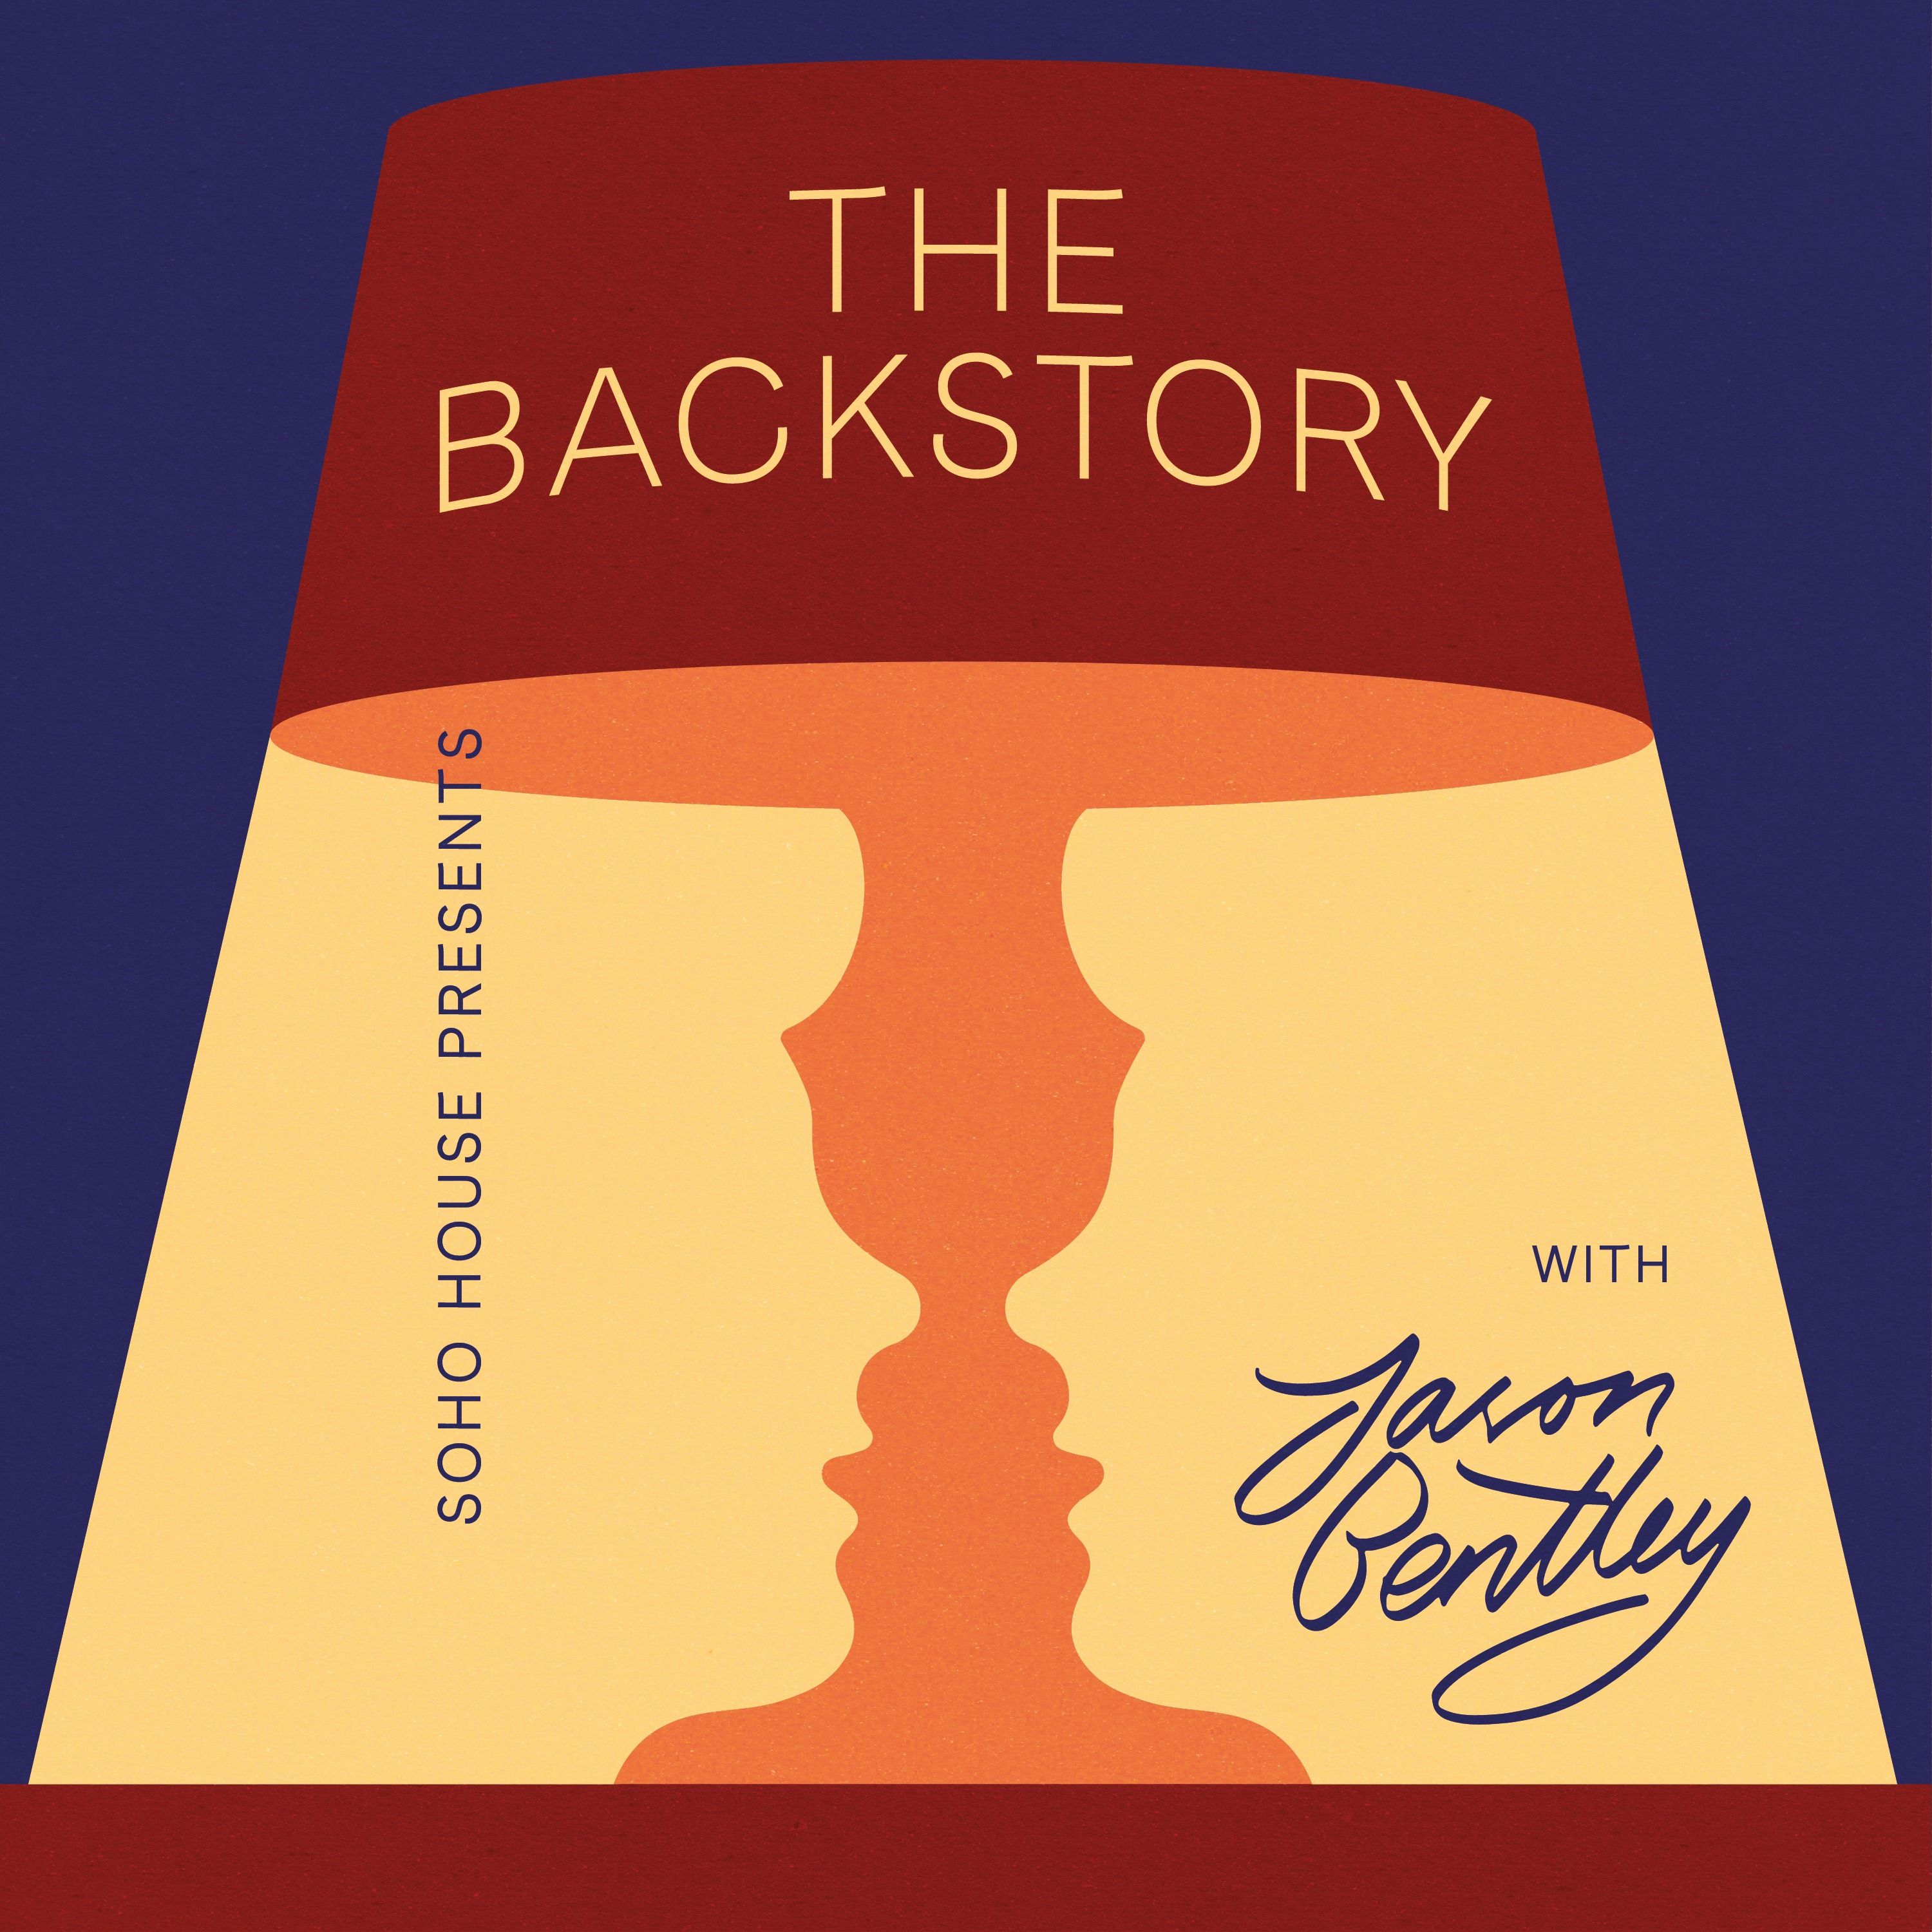 The Backstory Trailer